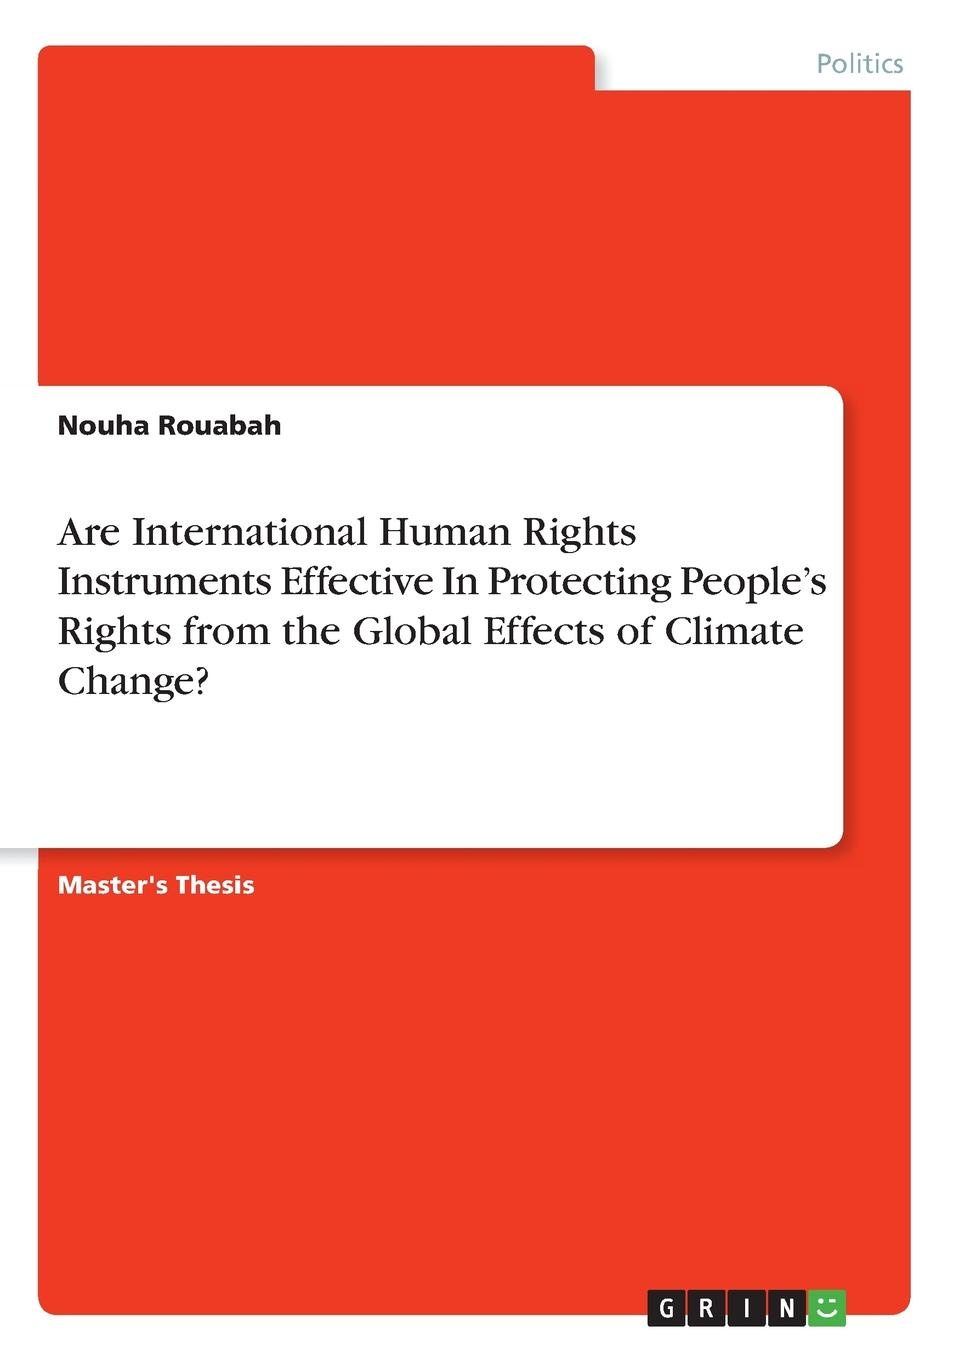 цены на Nouha Rouabah Are International Human Rights Instruments Effective In Protecting People.s Rights from the Global Effects of Climate Change.  в интернет-магазинах